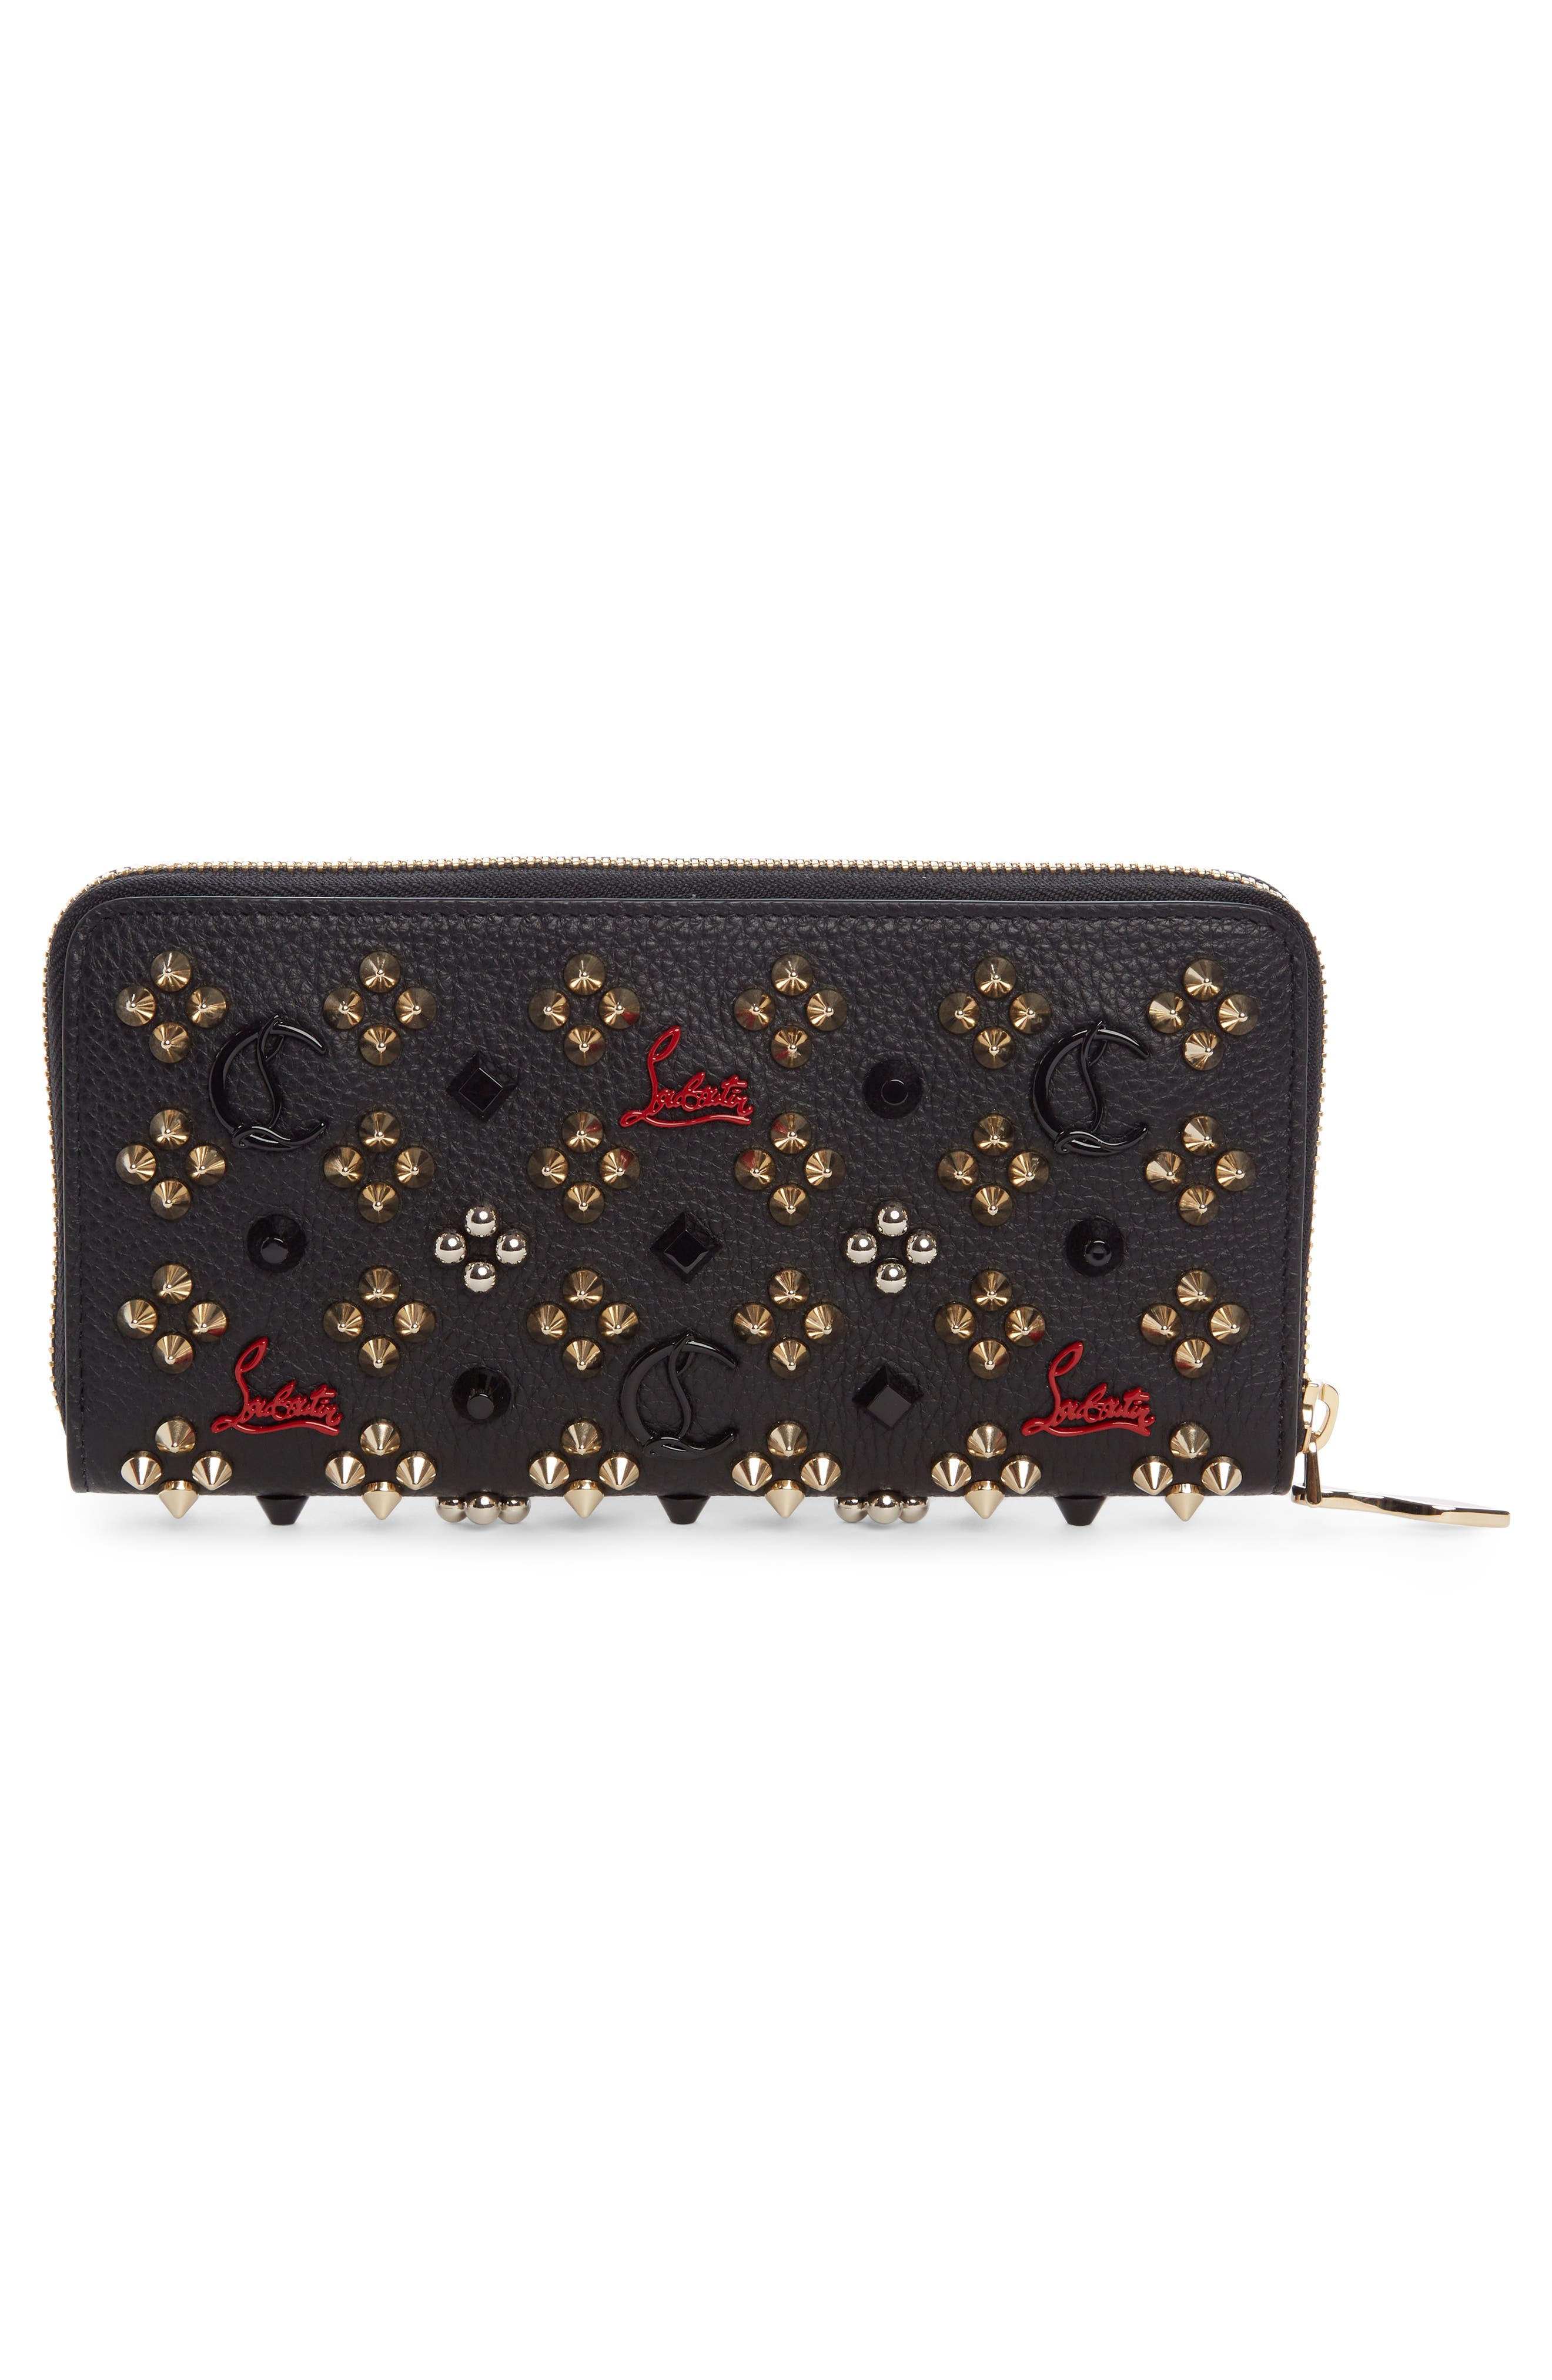 Panettone Spiked Calfskin Wallet,                             Alternate thumbnail 2, color,                             BLACK/ RED-GOLD